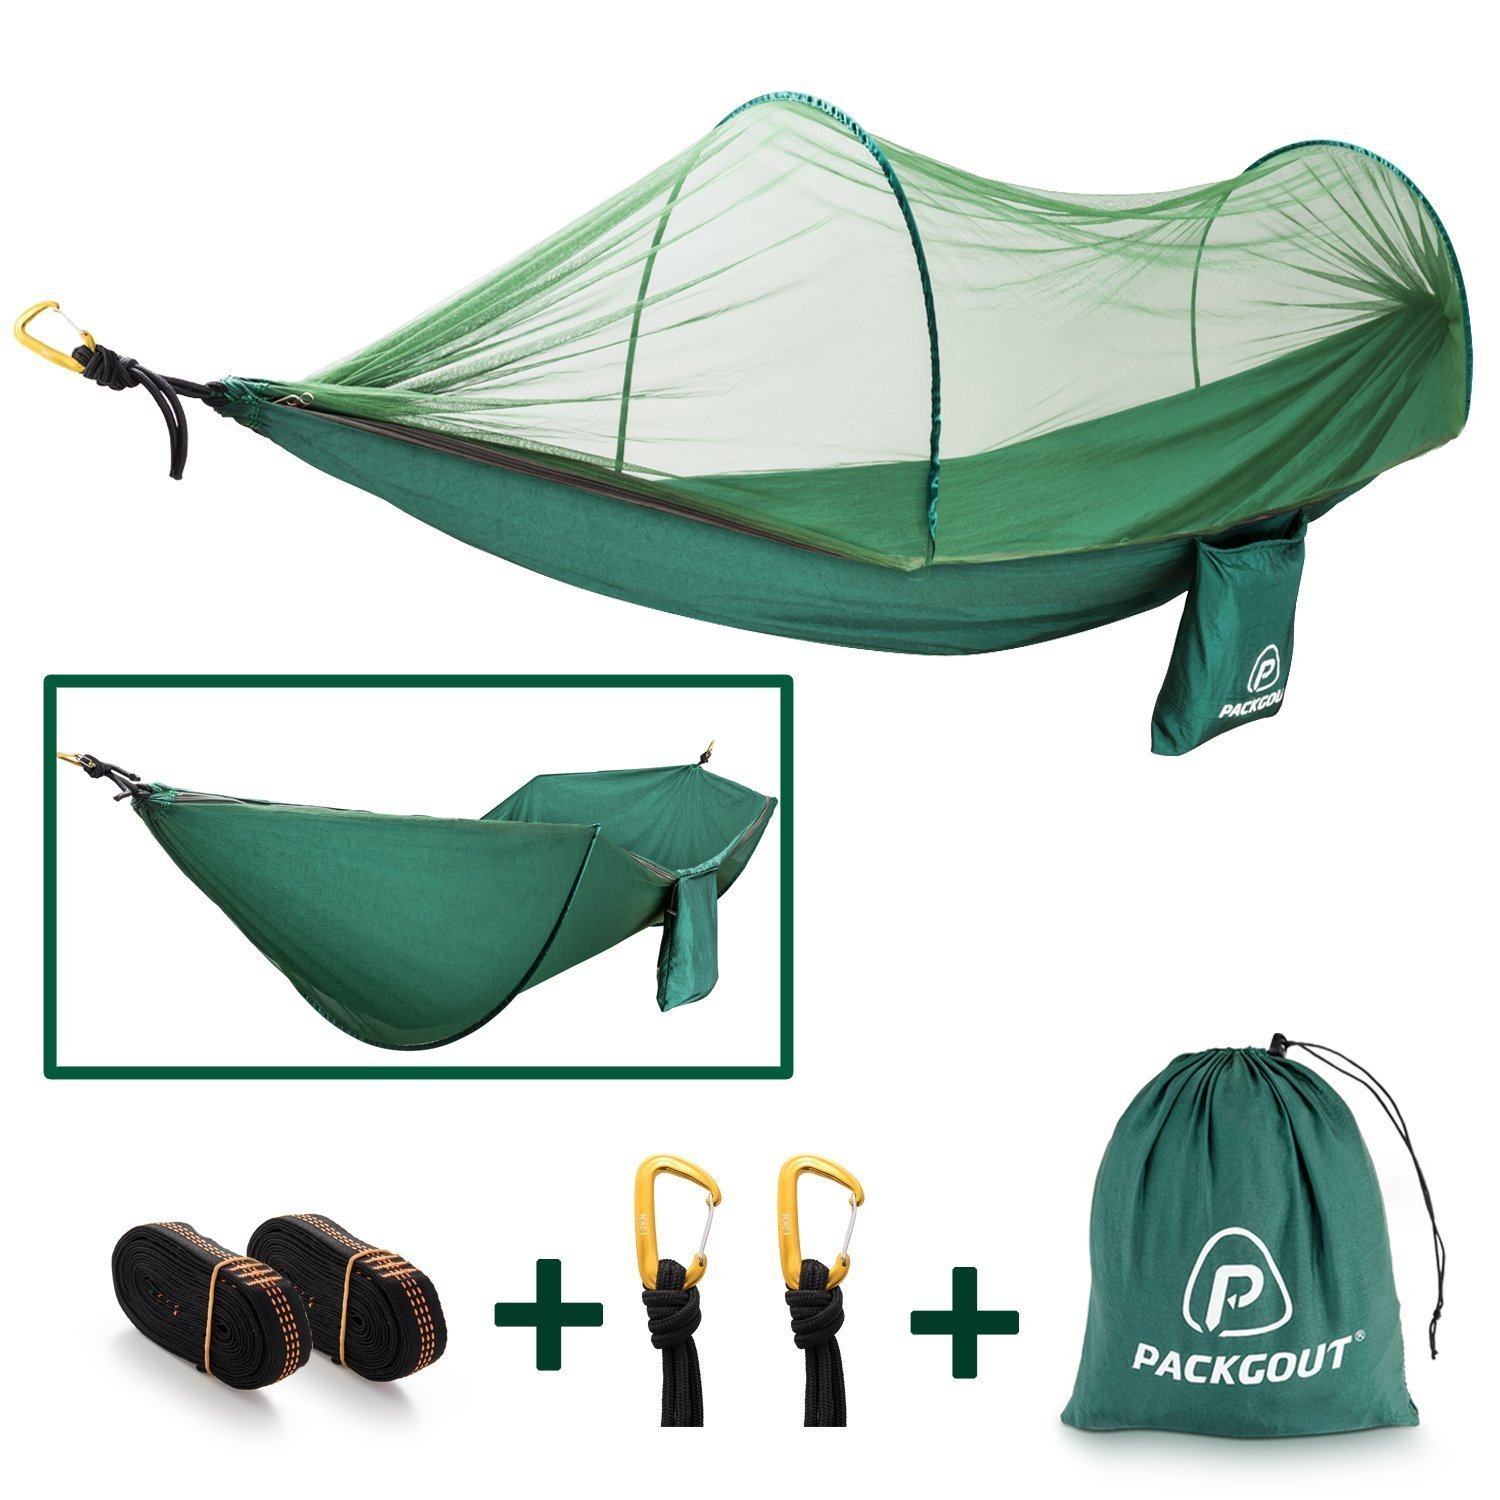 PACKGOUT PCACKGOUT Mosquito Hammock, Net Camping Gear Camping Hammock with Mosquito Lightweight Portable Hammock Sleeping Hammock for Travel Hiking Outdoor by PACKGOUT